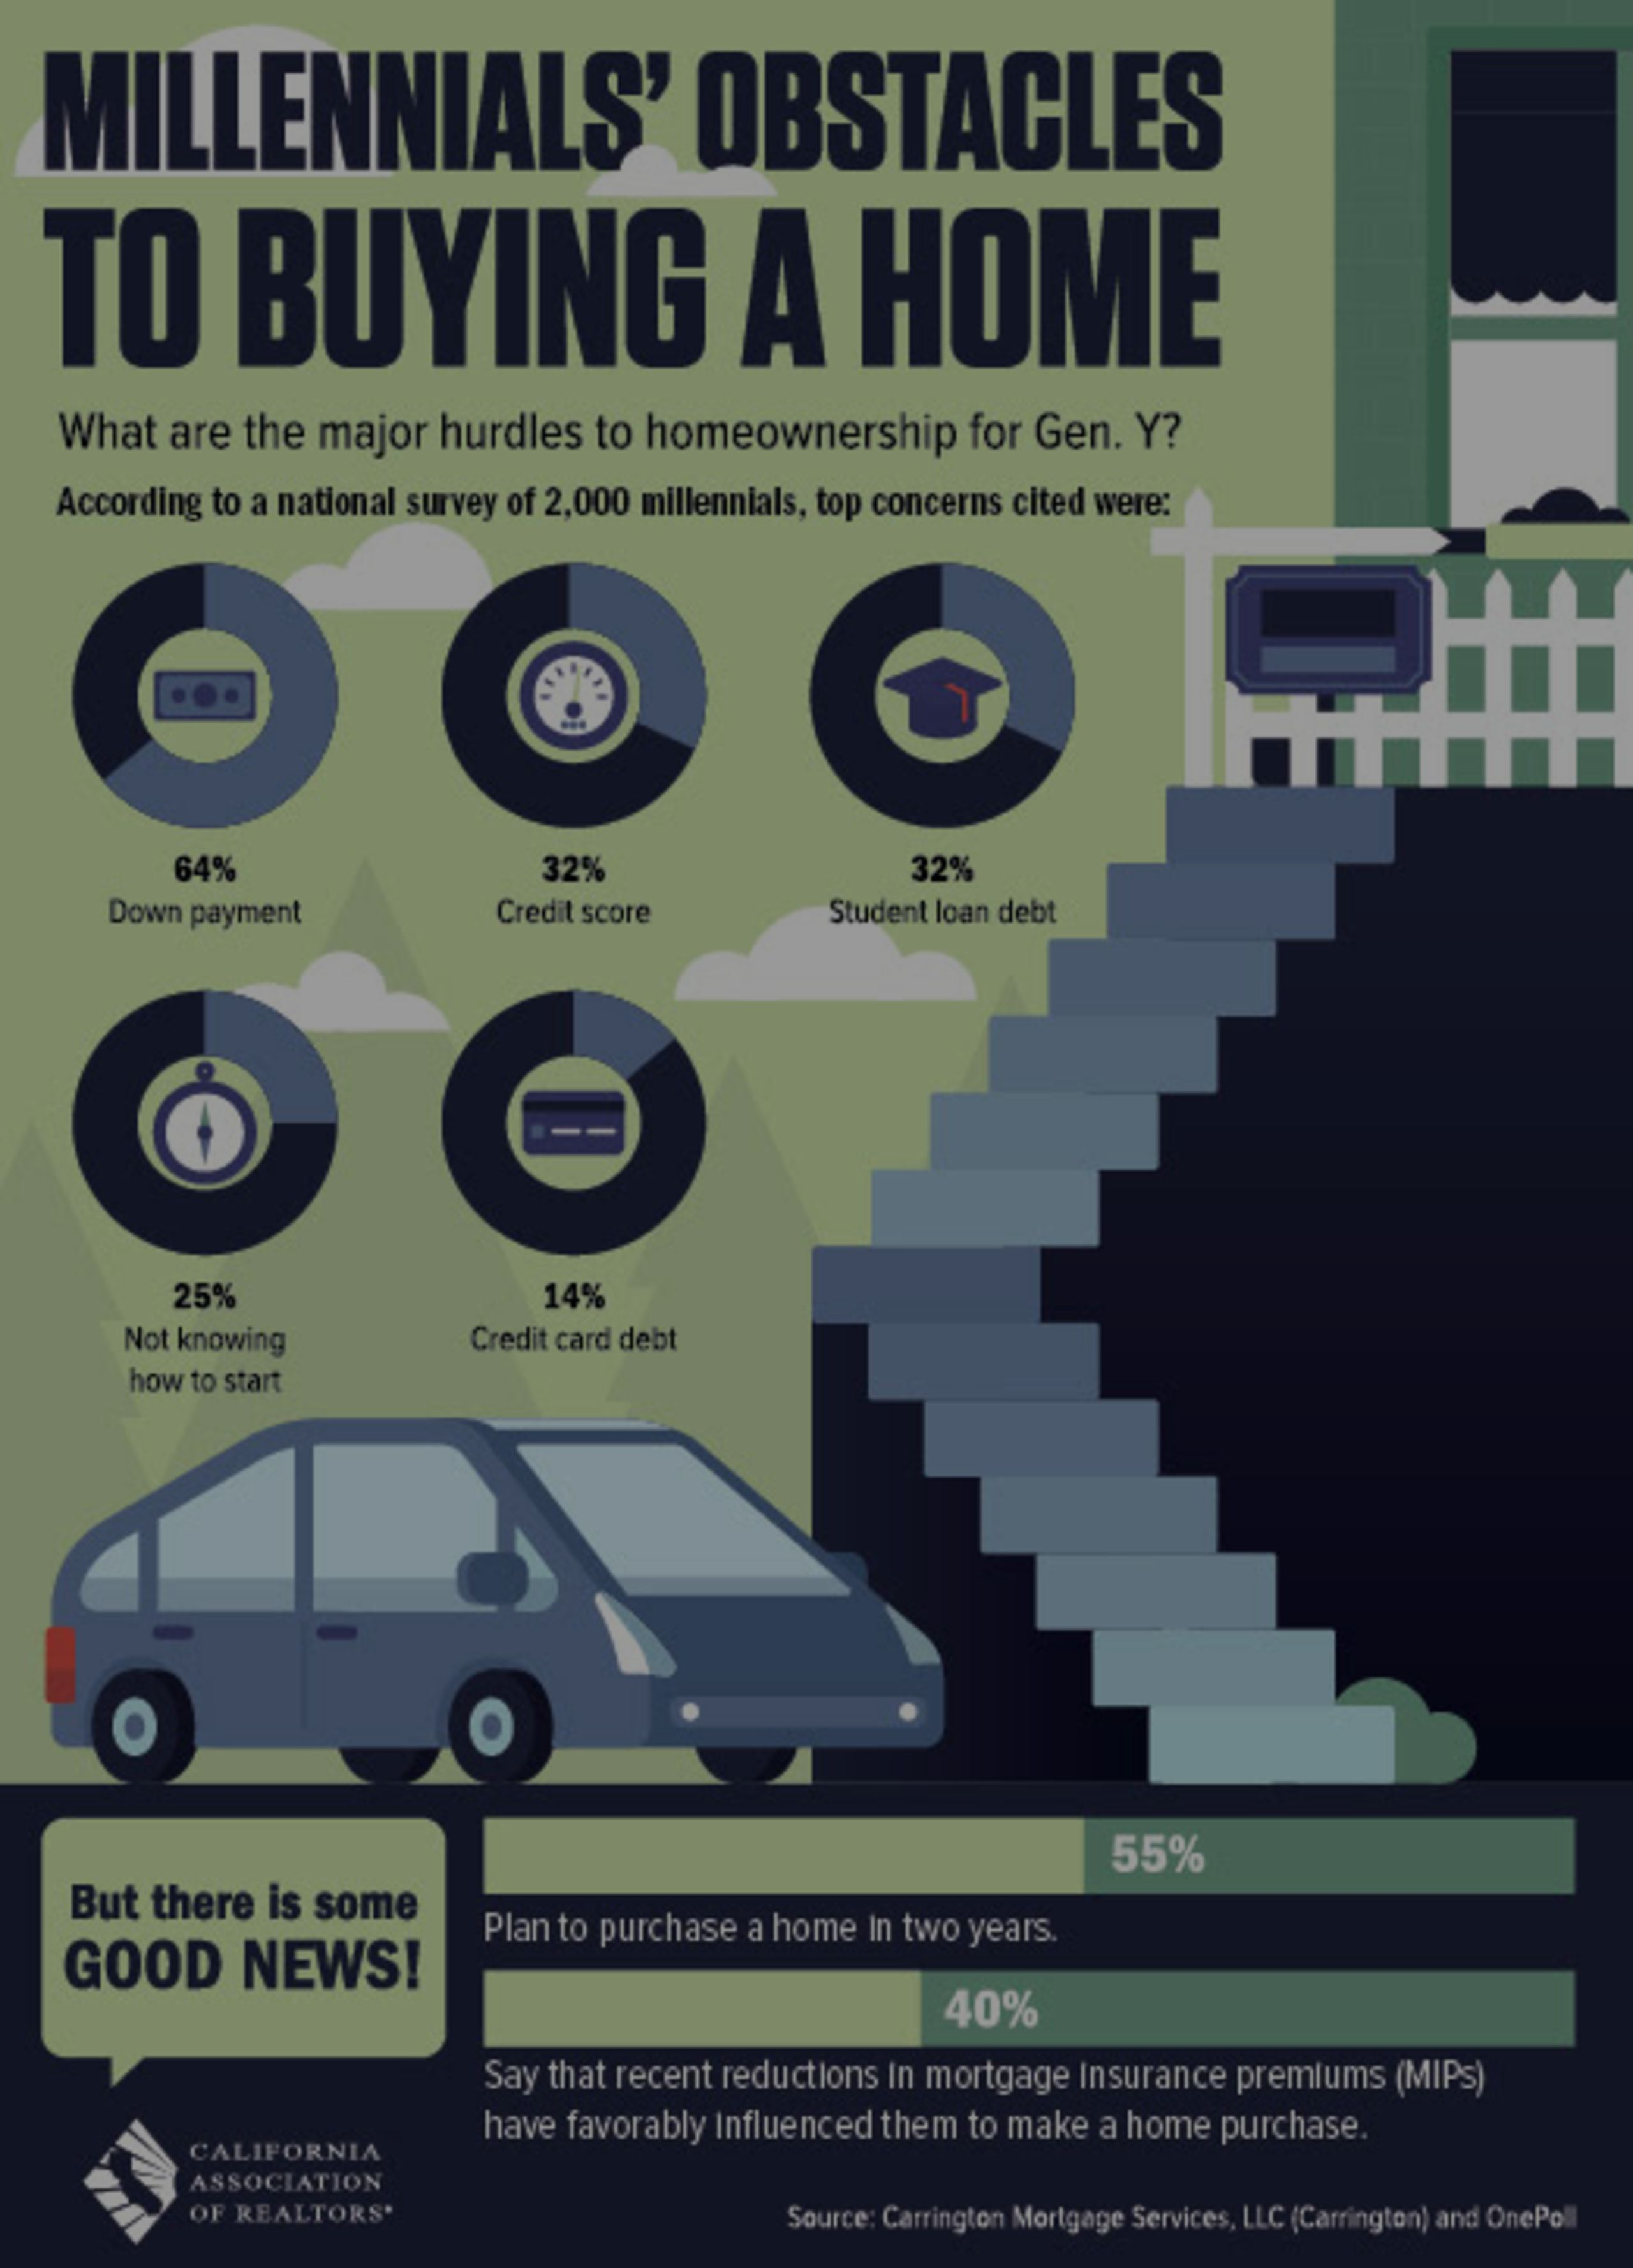 Millennials' Obstacles To Buying A Home